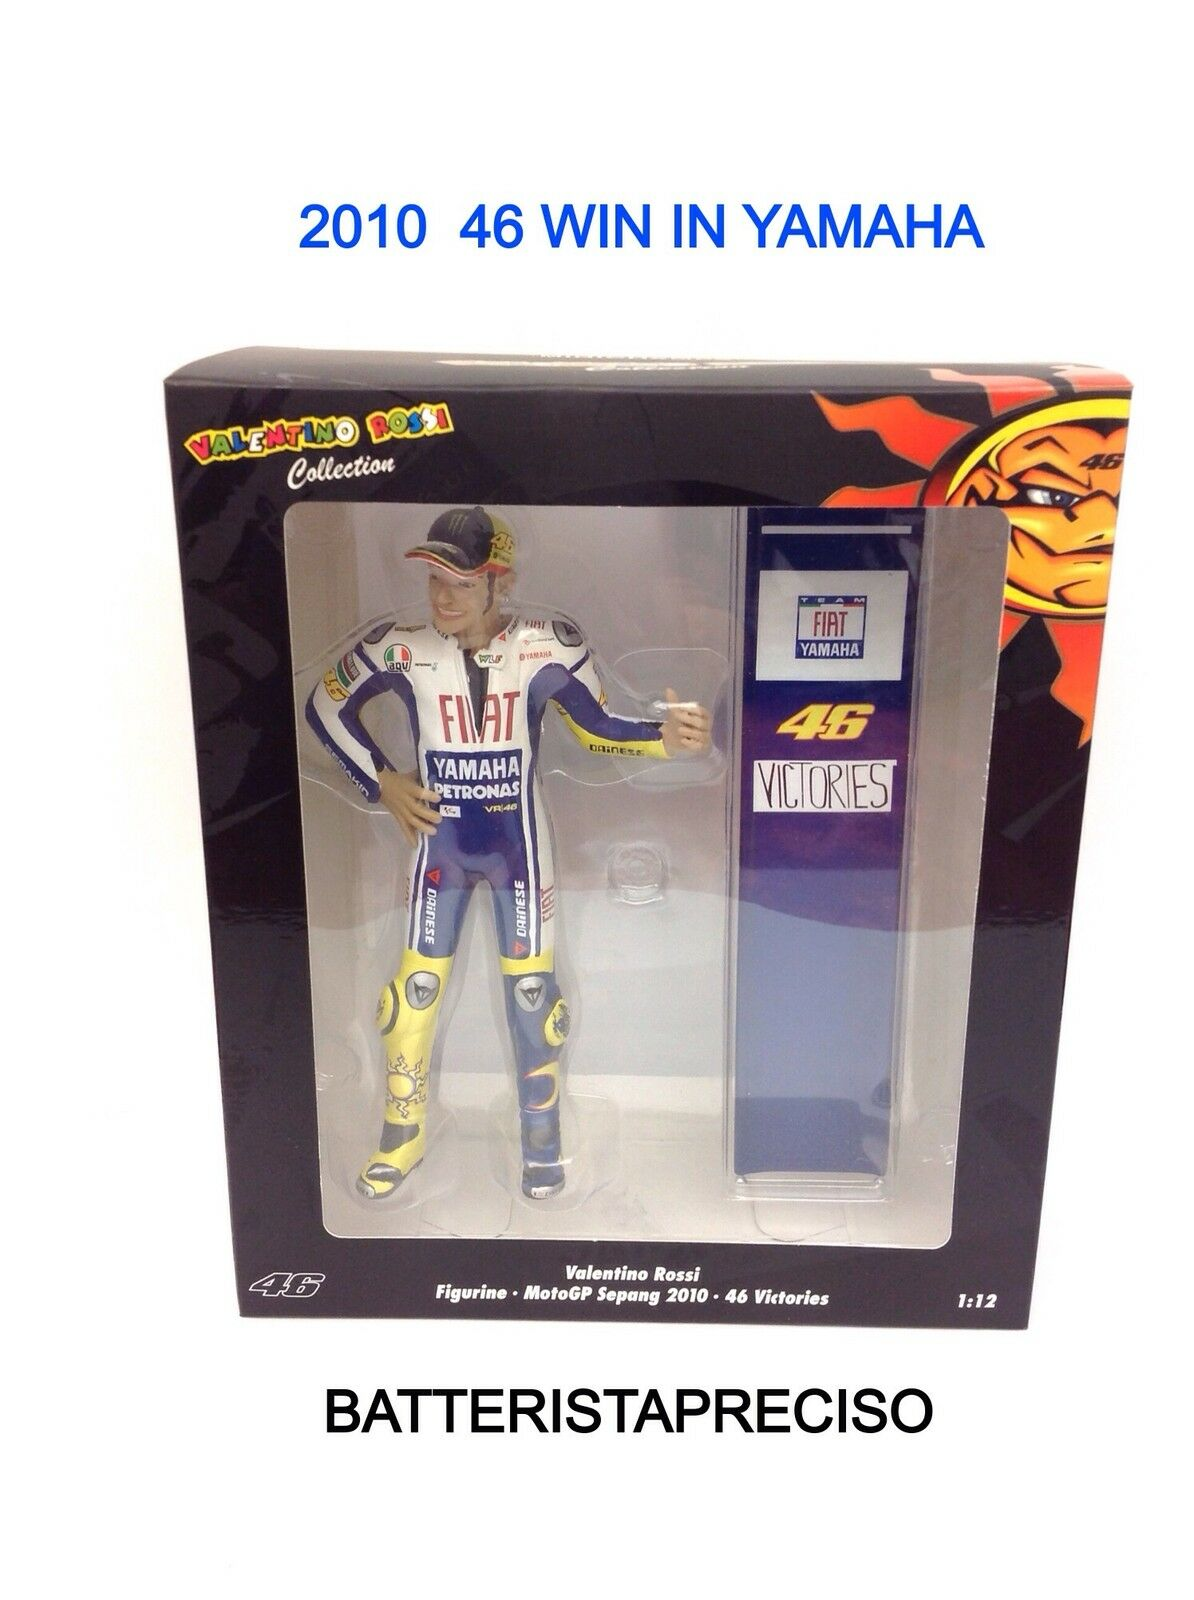 mejor calidad MINICHAMPS VALENTINO ROSSI ROSSI ROSSI 1 12 Figura + PIT 46 VICTORIERS IN YAMAHA 2010 SEPANG  ofrecemos varias marcas famosas